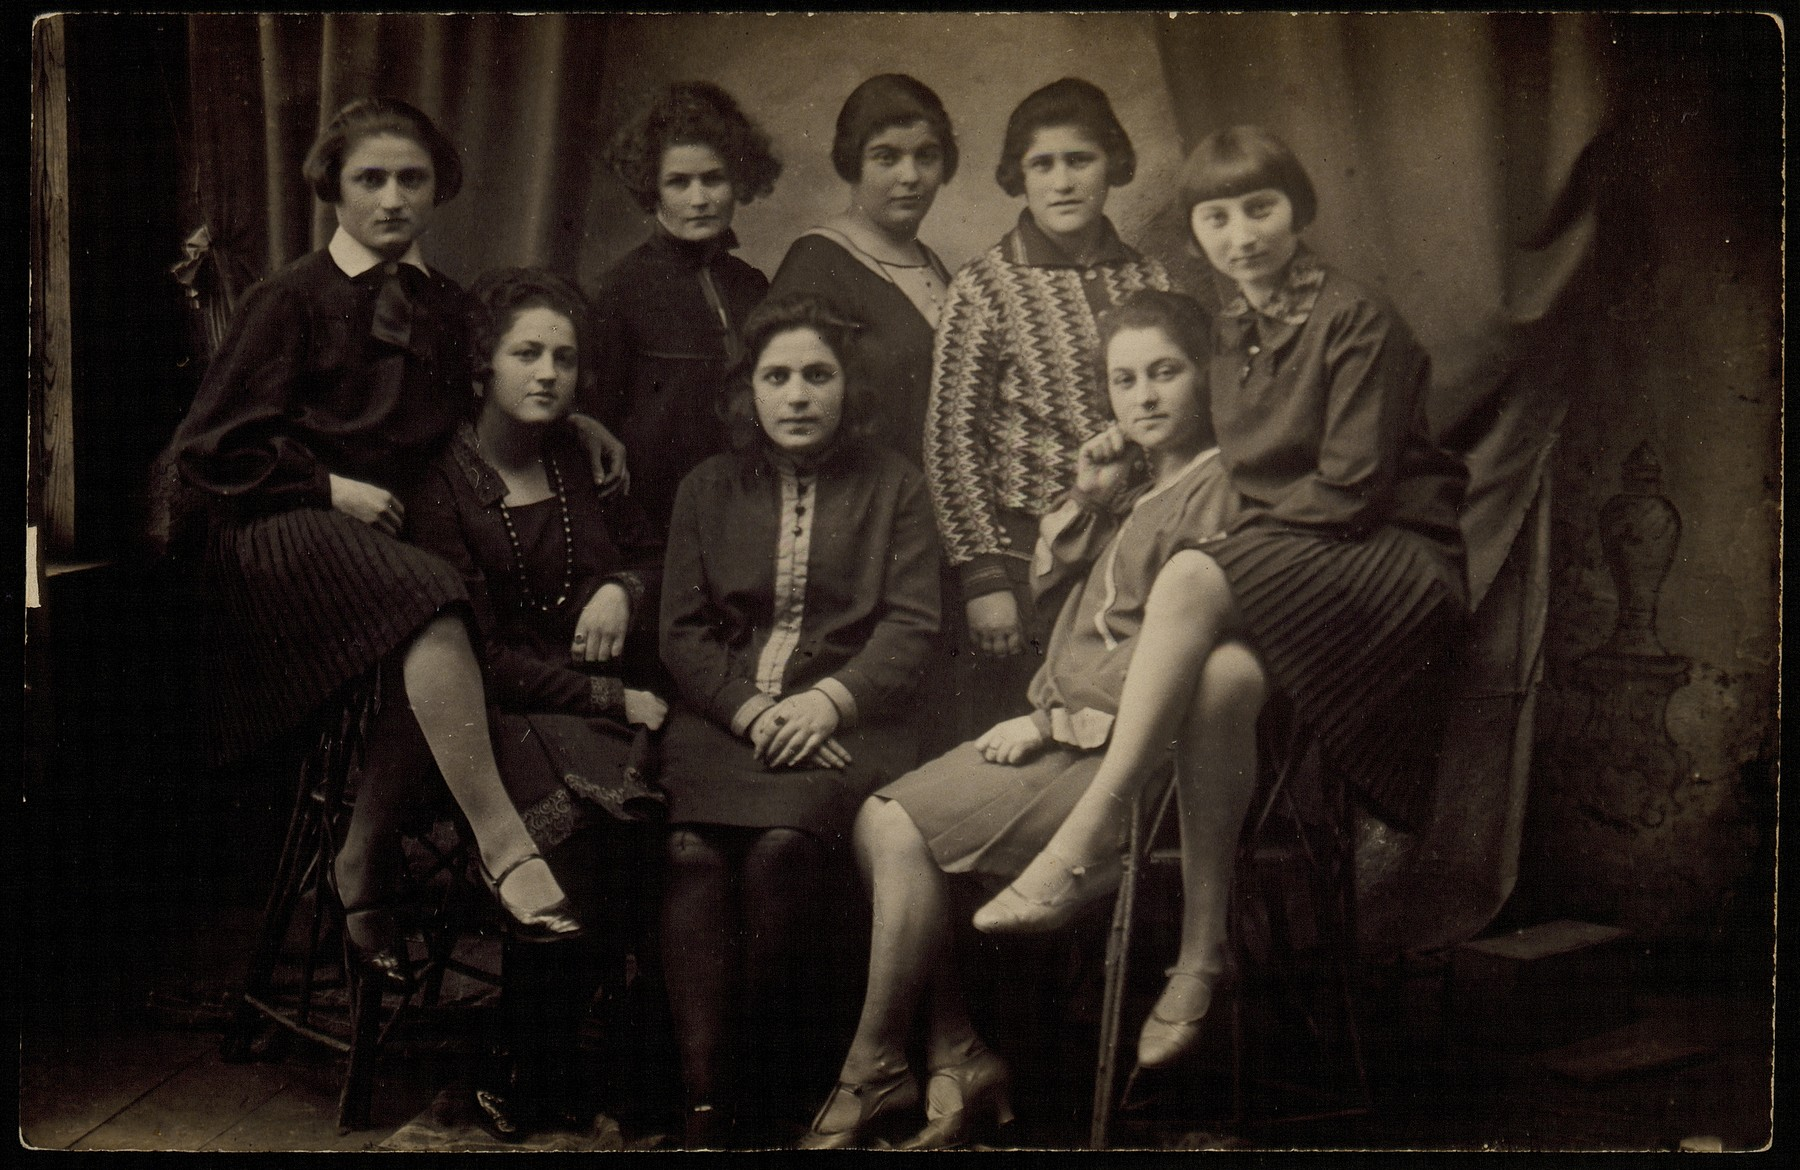 """Group portrait of young Jewish women who were members of the """"Club 21"""" in Eisiskes.  Among those pictured are Zipporah Katz (seated on the right), Kumin (second from the right), Etele Yuranski (fourth from the right), Geneshe Kaganowicz (far left) and Matle Sonenson (second from the left).  Zipporah, Geneshe and Matle later became sisters-in-law.  Matle survived the war in Siberia; Etele was killed in the Radun ghetto on May 10, 1942; Kumin died in Auschwitz; Zipporah was killed by members of the Polish Home Army in October 1944.  The others were killed by the Germans during the September 1941 mass shooting action in Eisiskes."""